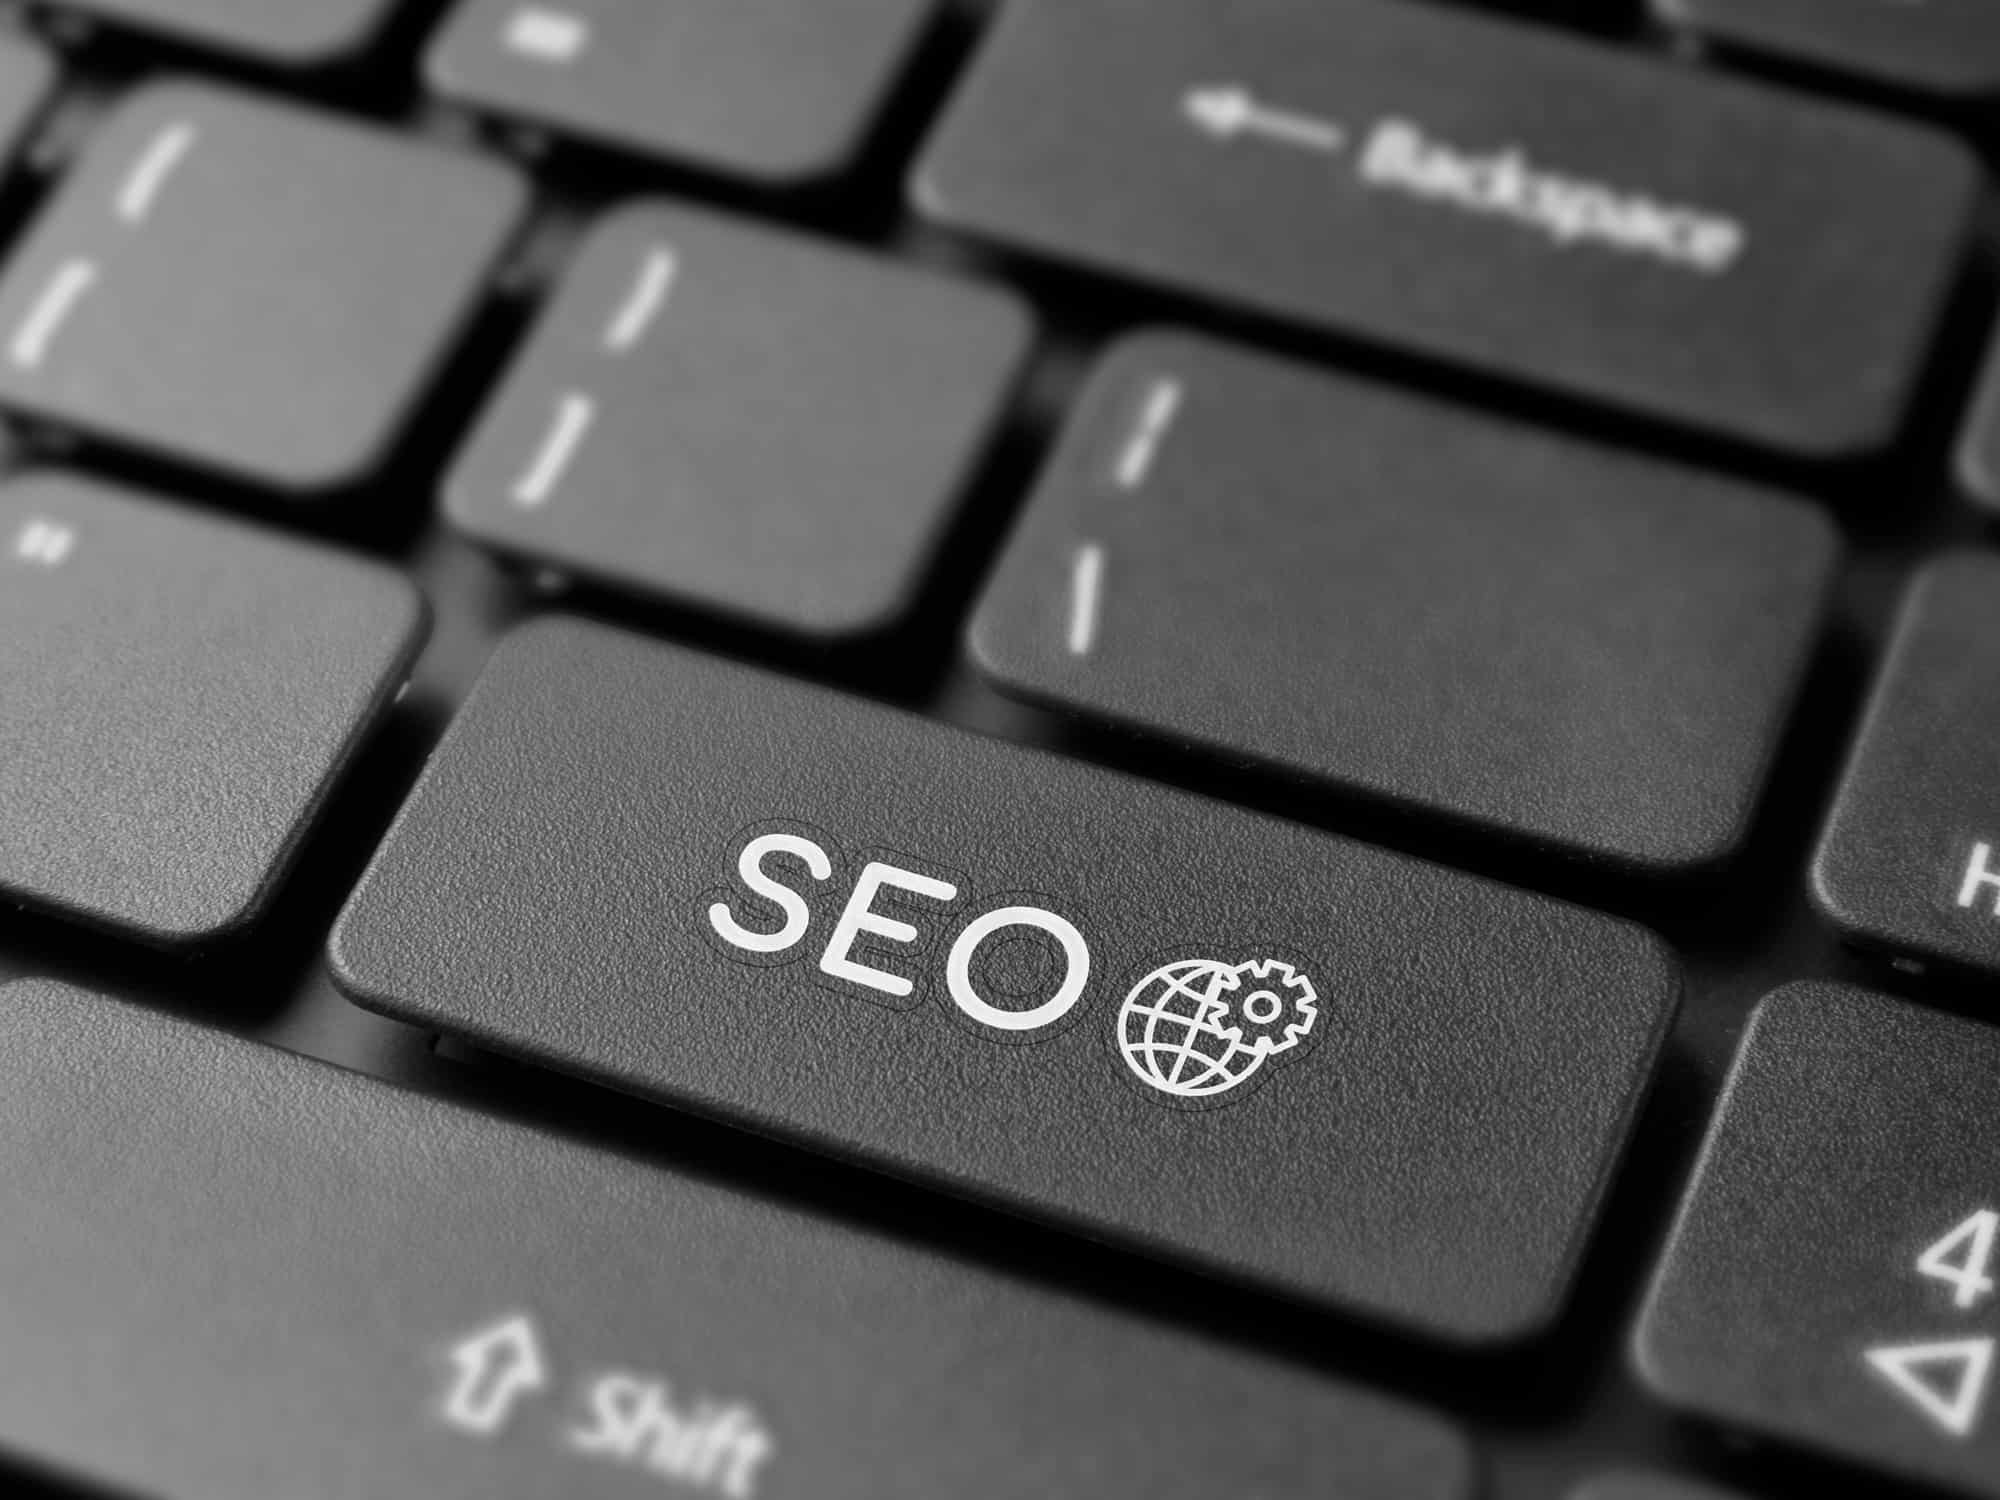 Dental SEO on keyboard black and white image